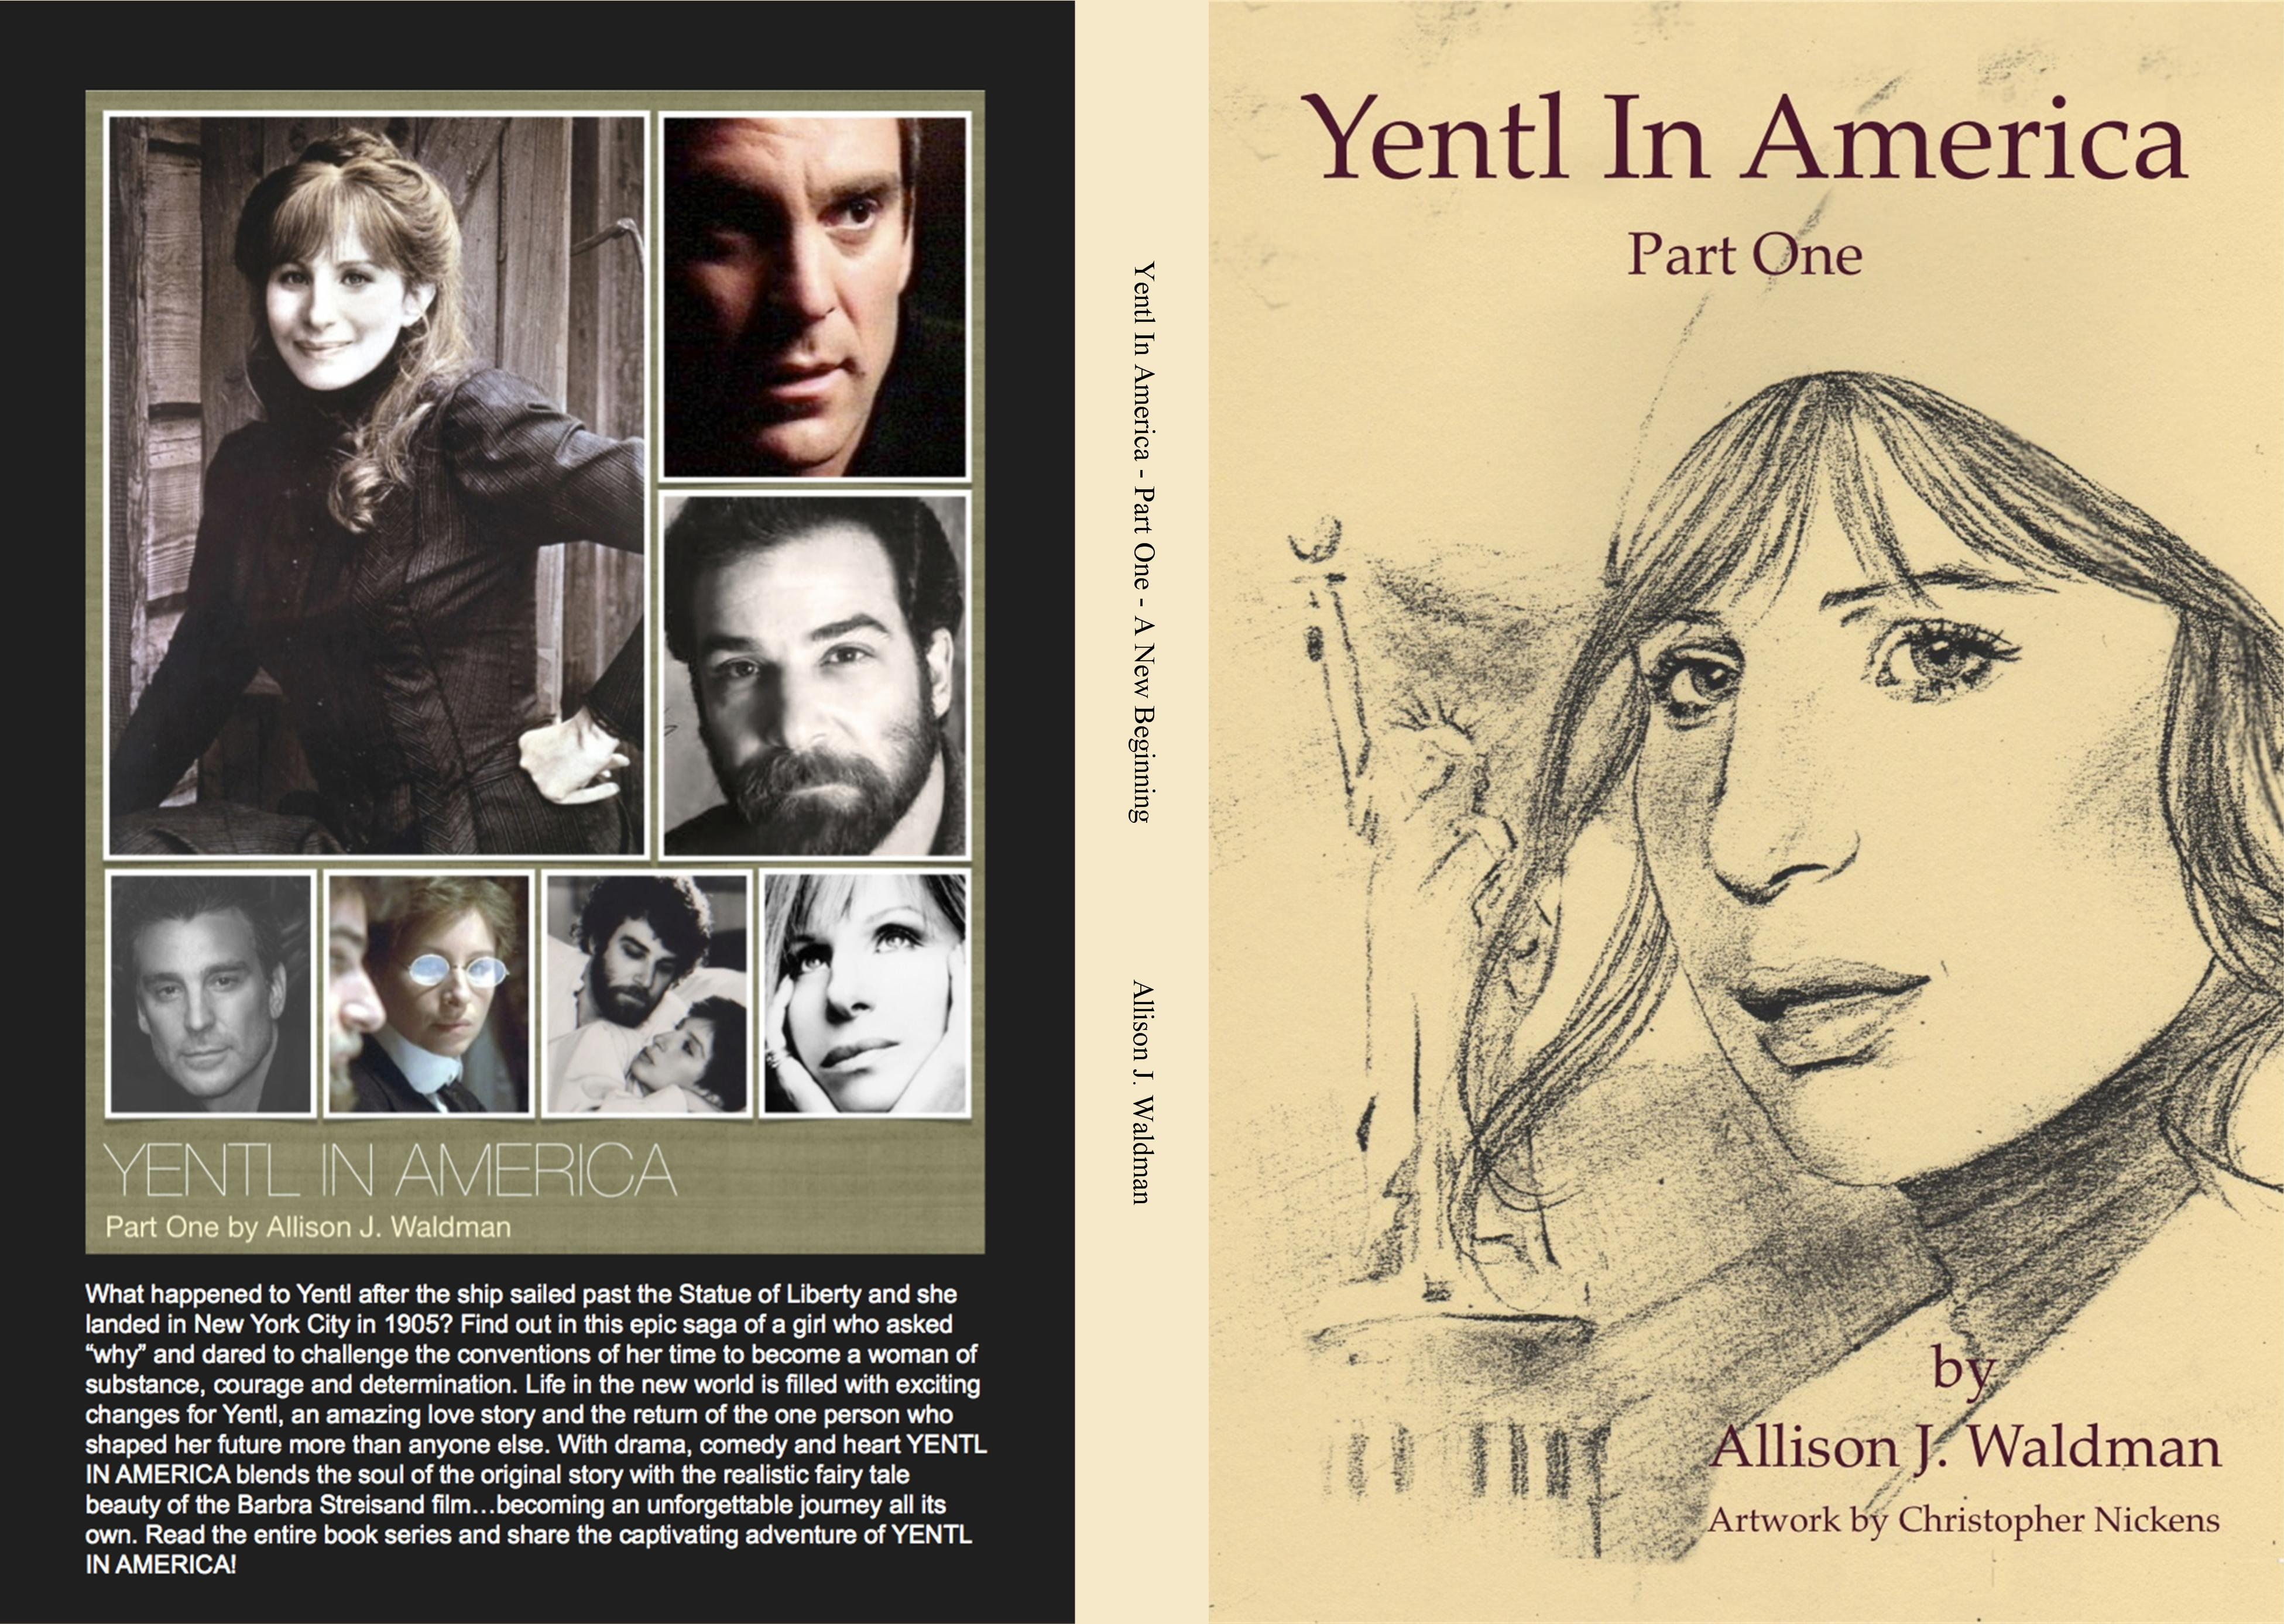 Yentl In America - Part One cover image